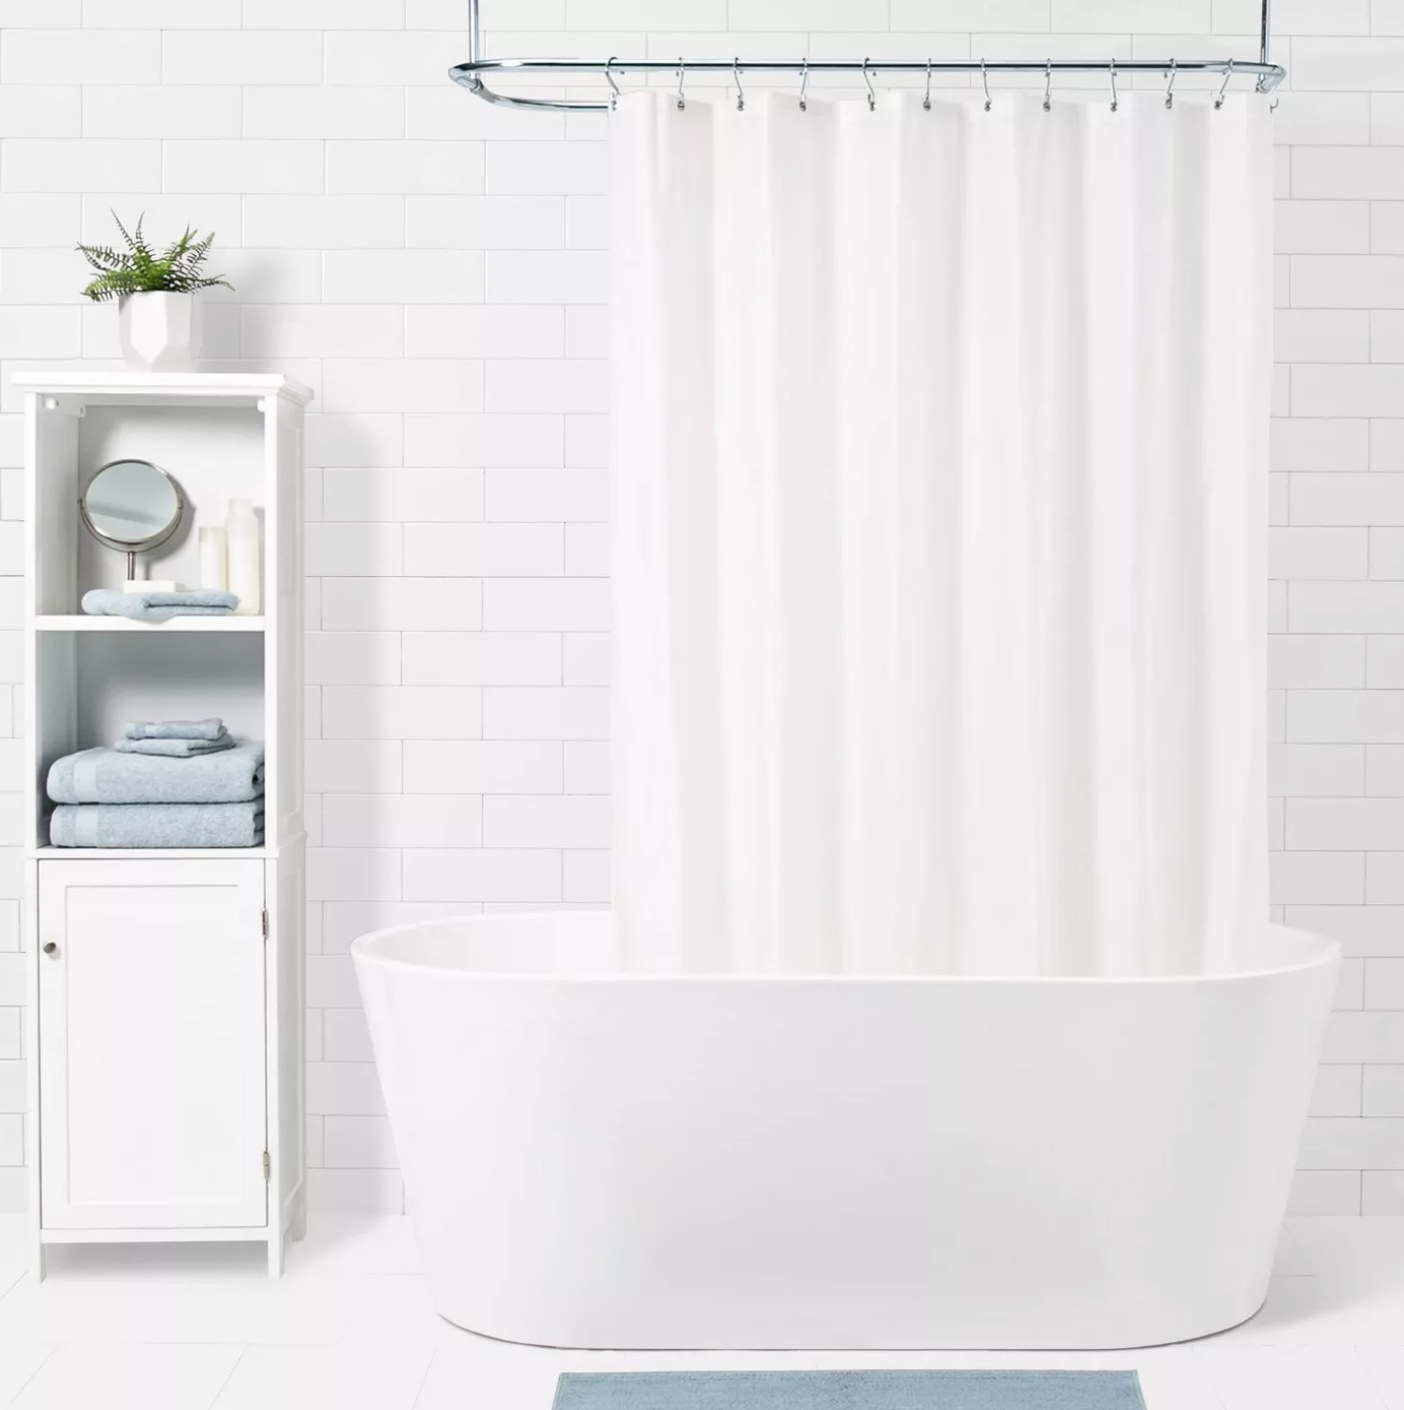 The frosted shower liner